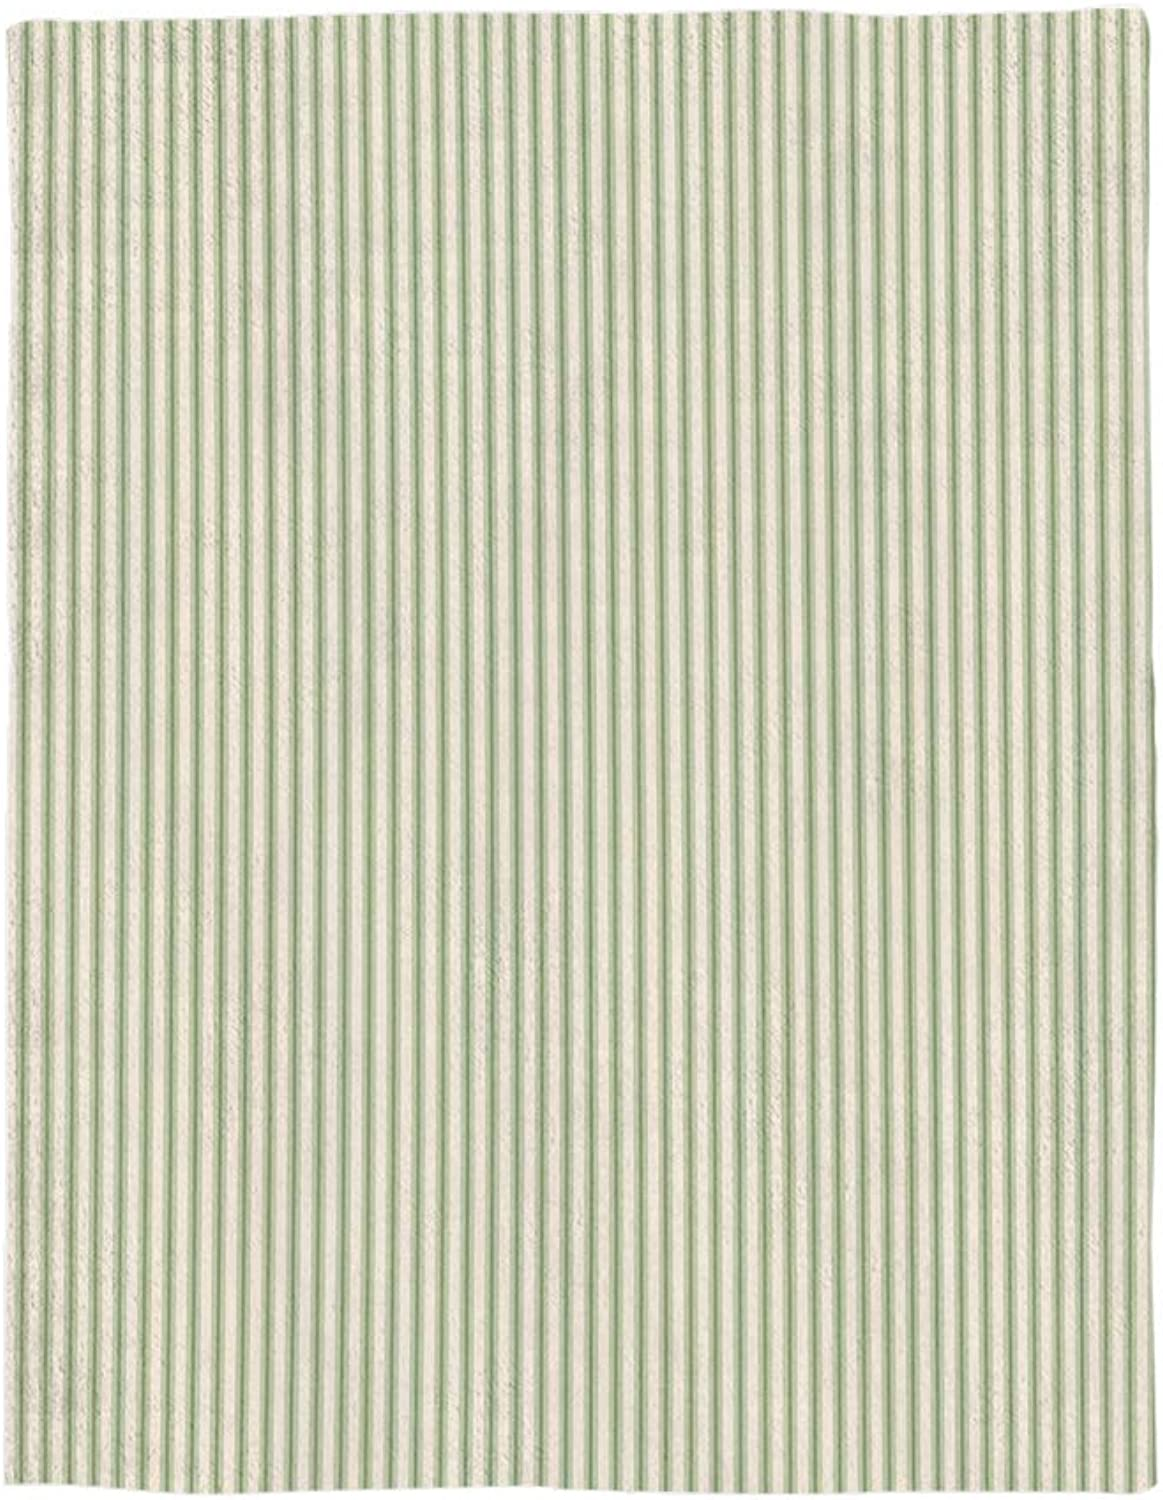 DOMESPACE greenical Straight Line Stripes Geometric Print Flannel Throw Blanket 49x79inch Lightweight Plush Microfiber Fleece Comfy Gift Blankets for Chair Bed Couch